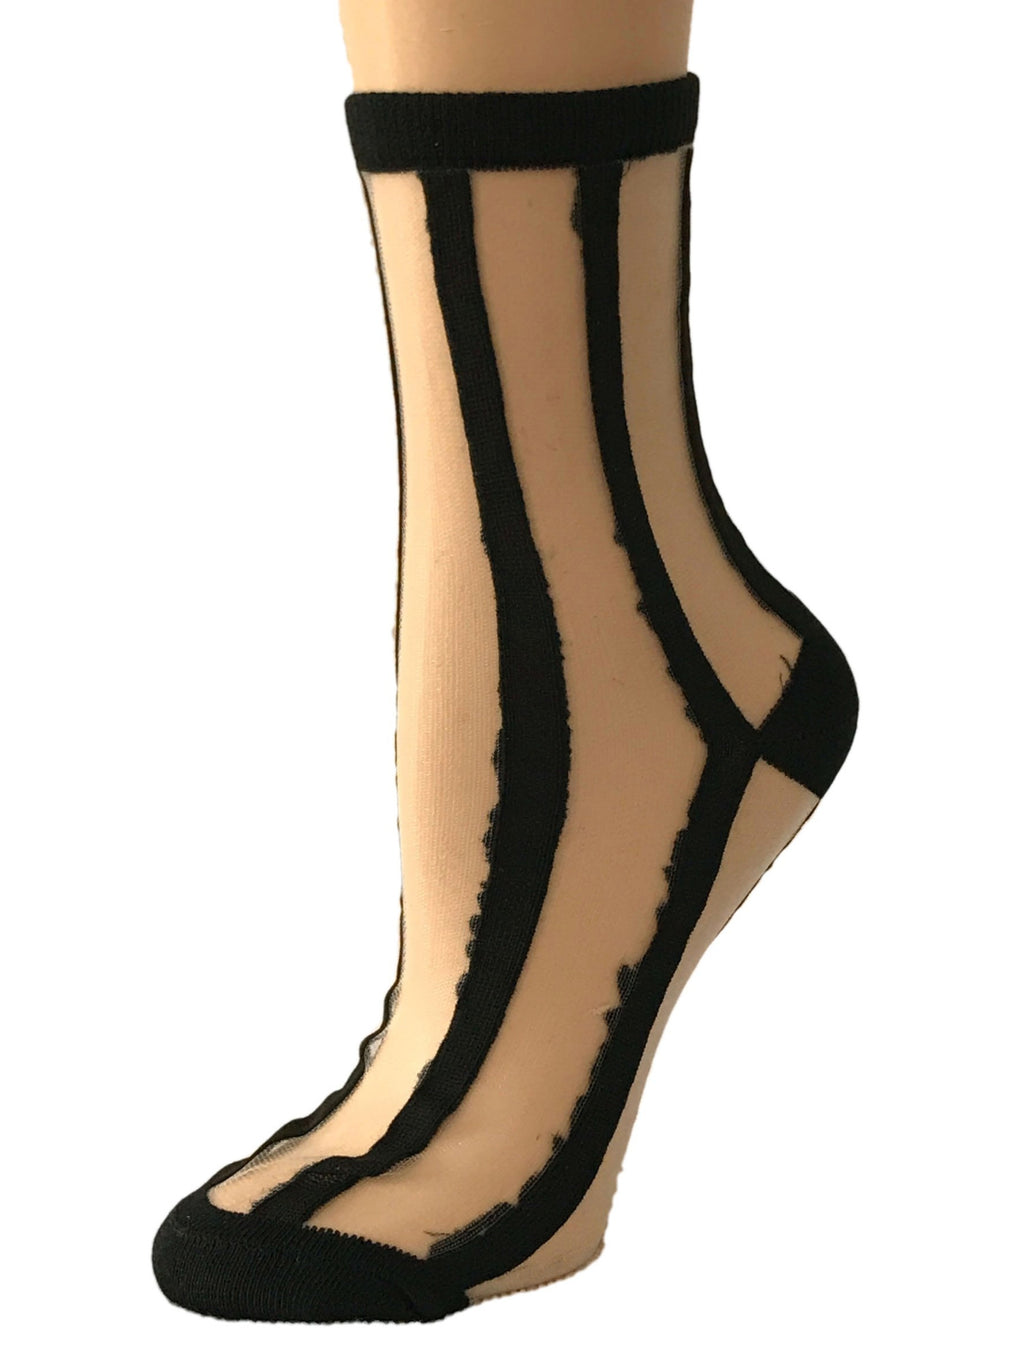 Brunet Black Striped Sheer Socks - Global Trendz Fashion®